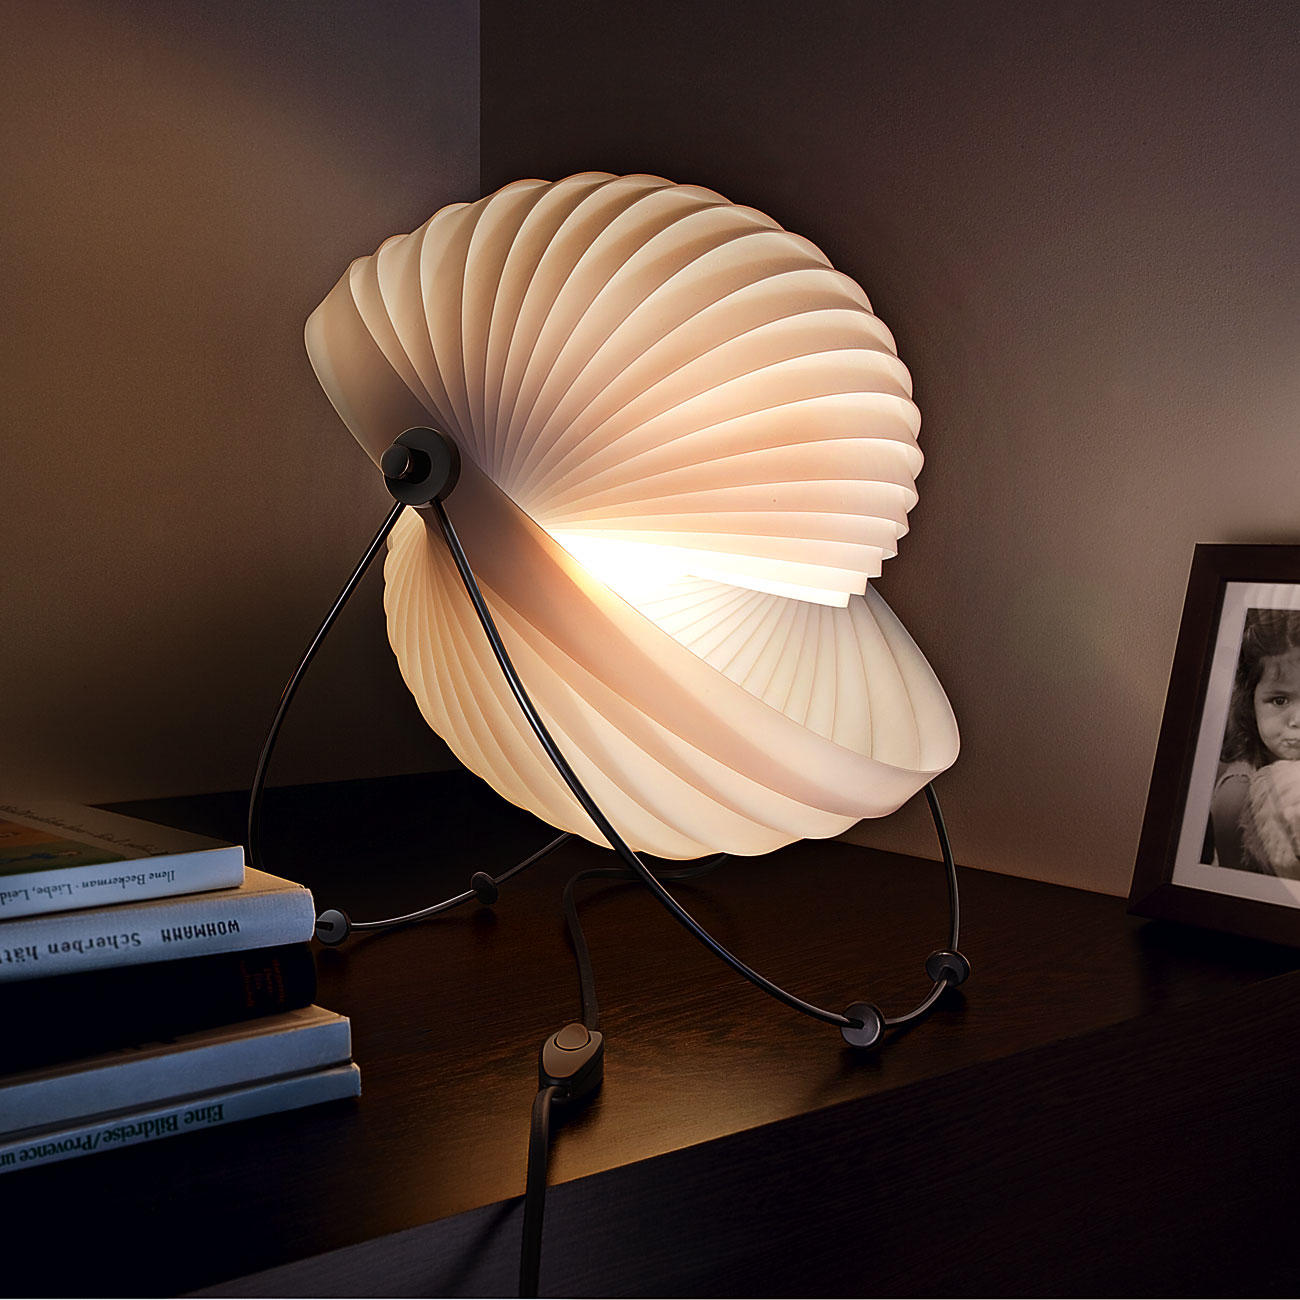 Designer Lampe Klassiker ~ Buy quot eclipse designer lamp year product guarantee